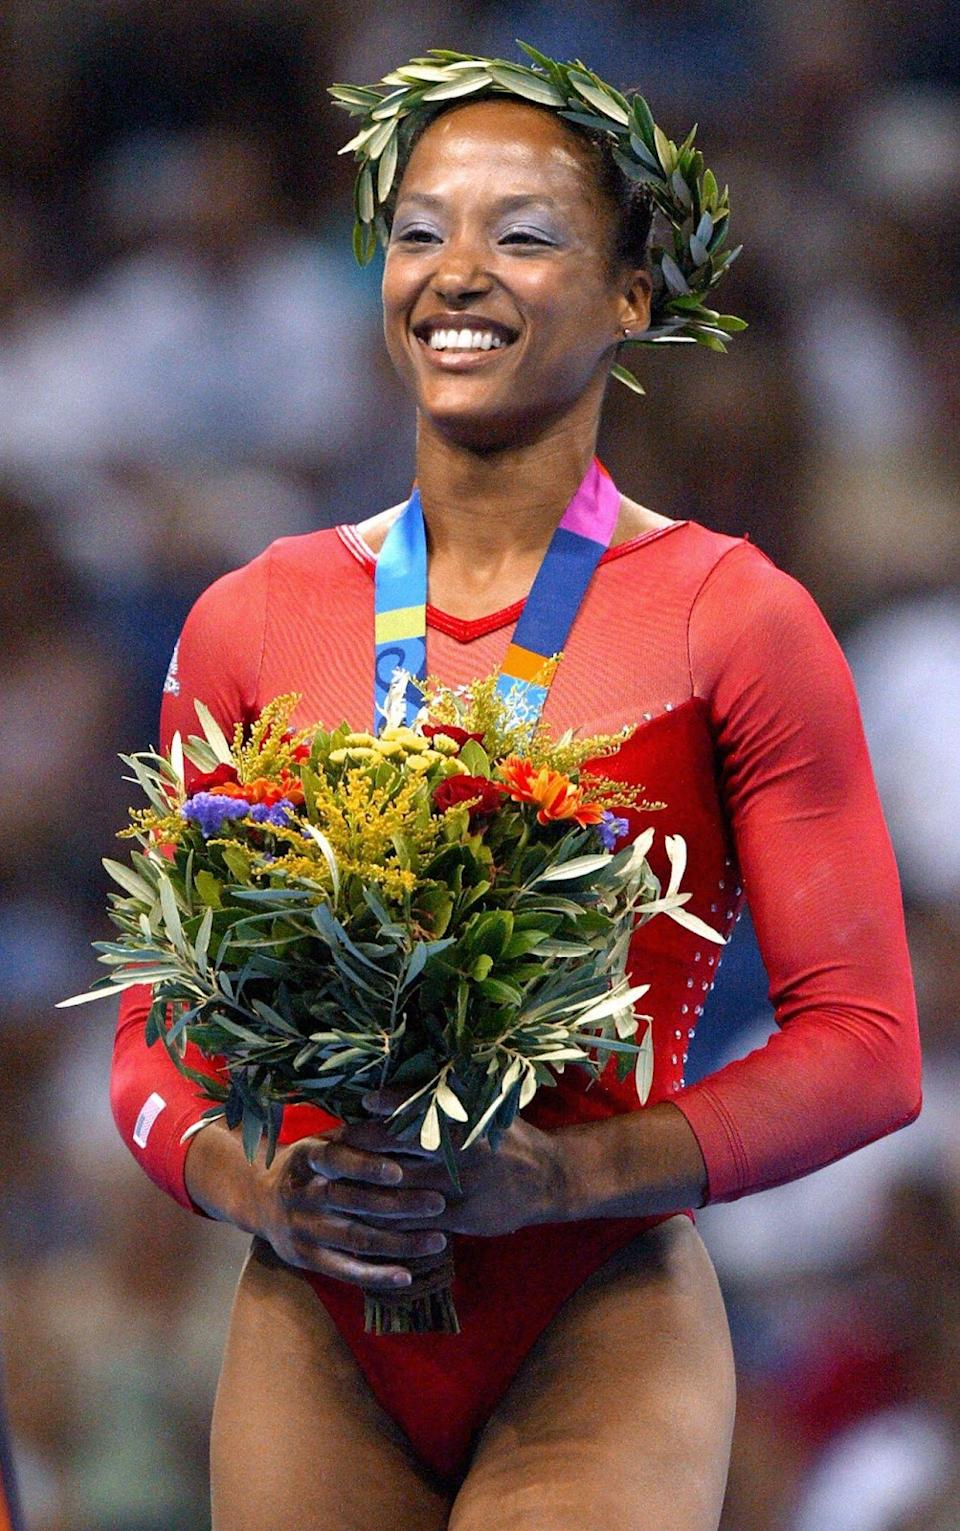 Annia Hatch celebrating her silver medal on the podium in Athens in 2004. (Photo: ADRIAN DENNIS / AFP via Getty Images)